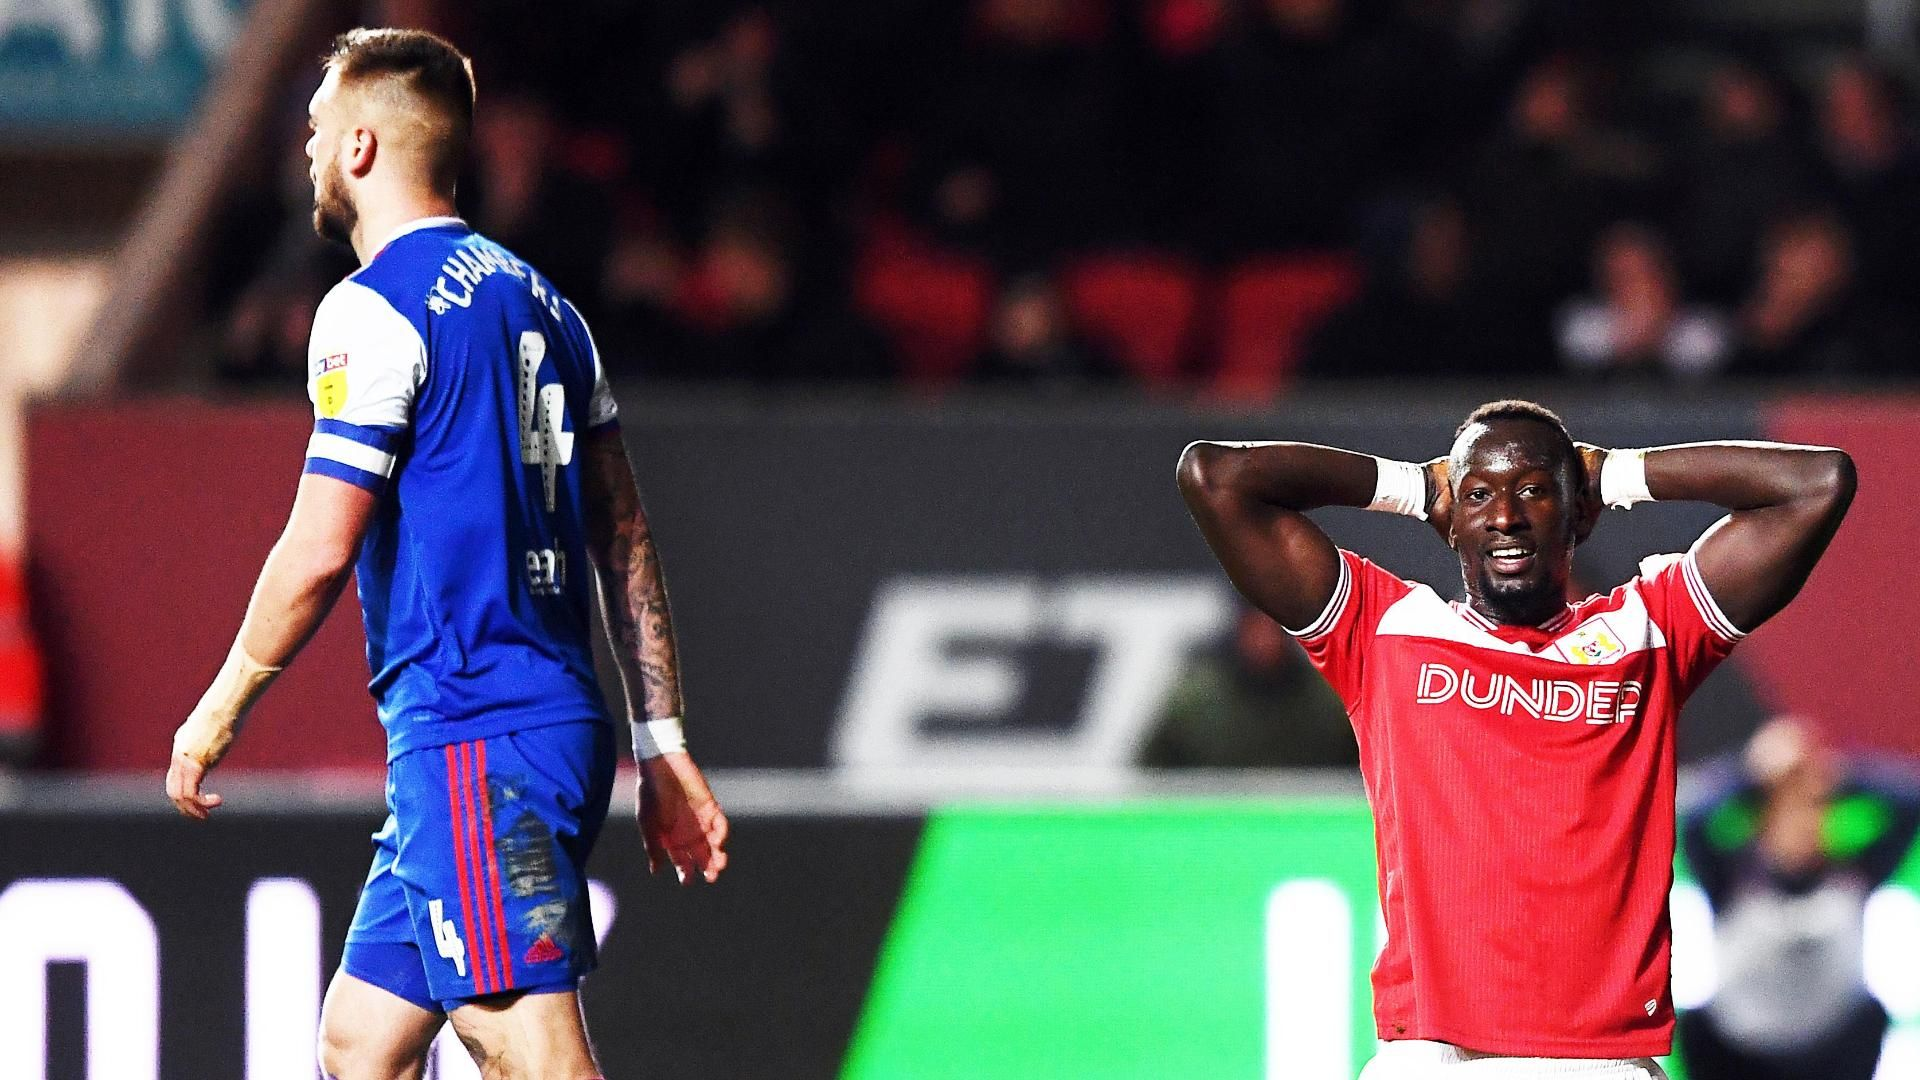 Bristol City drop vital points in playoff push